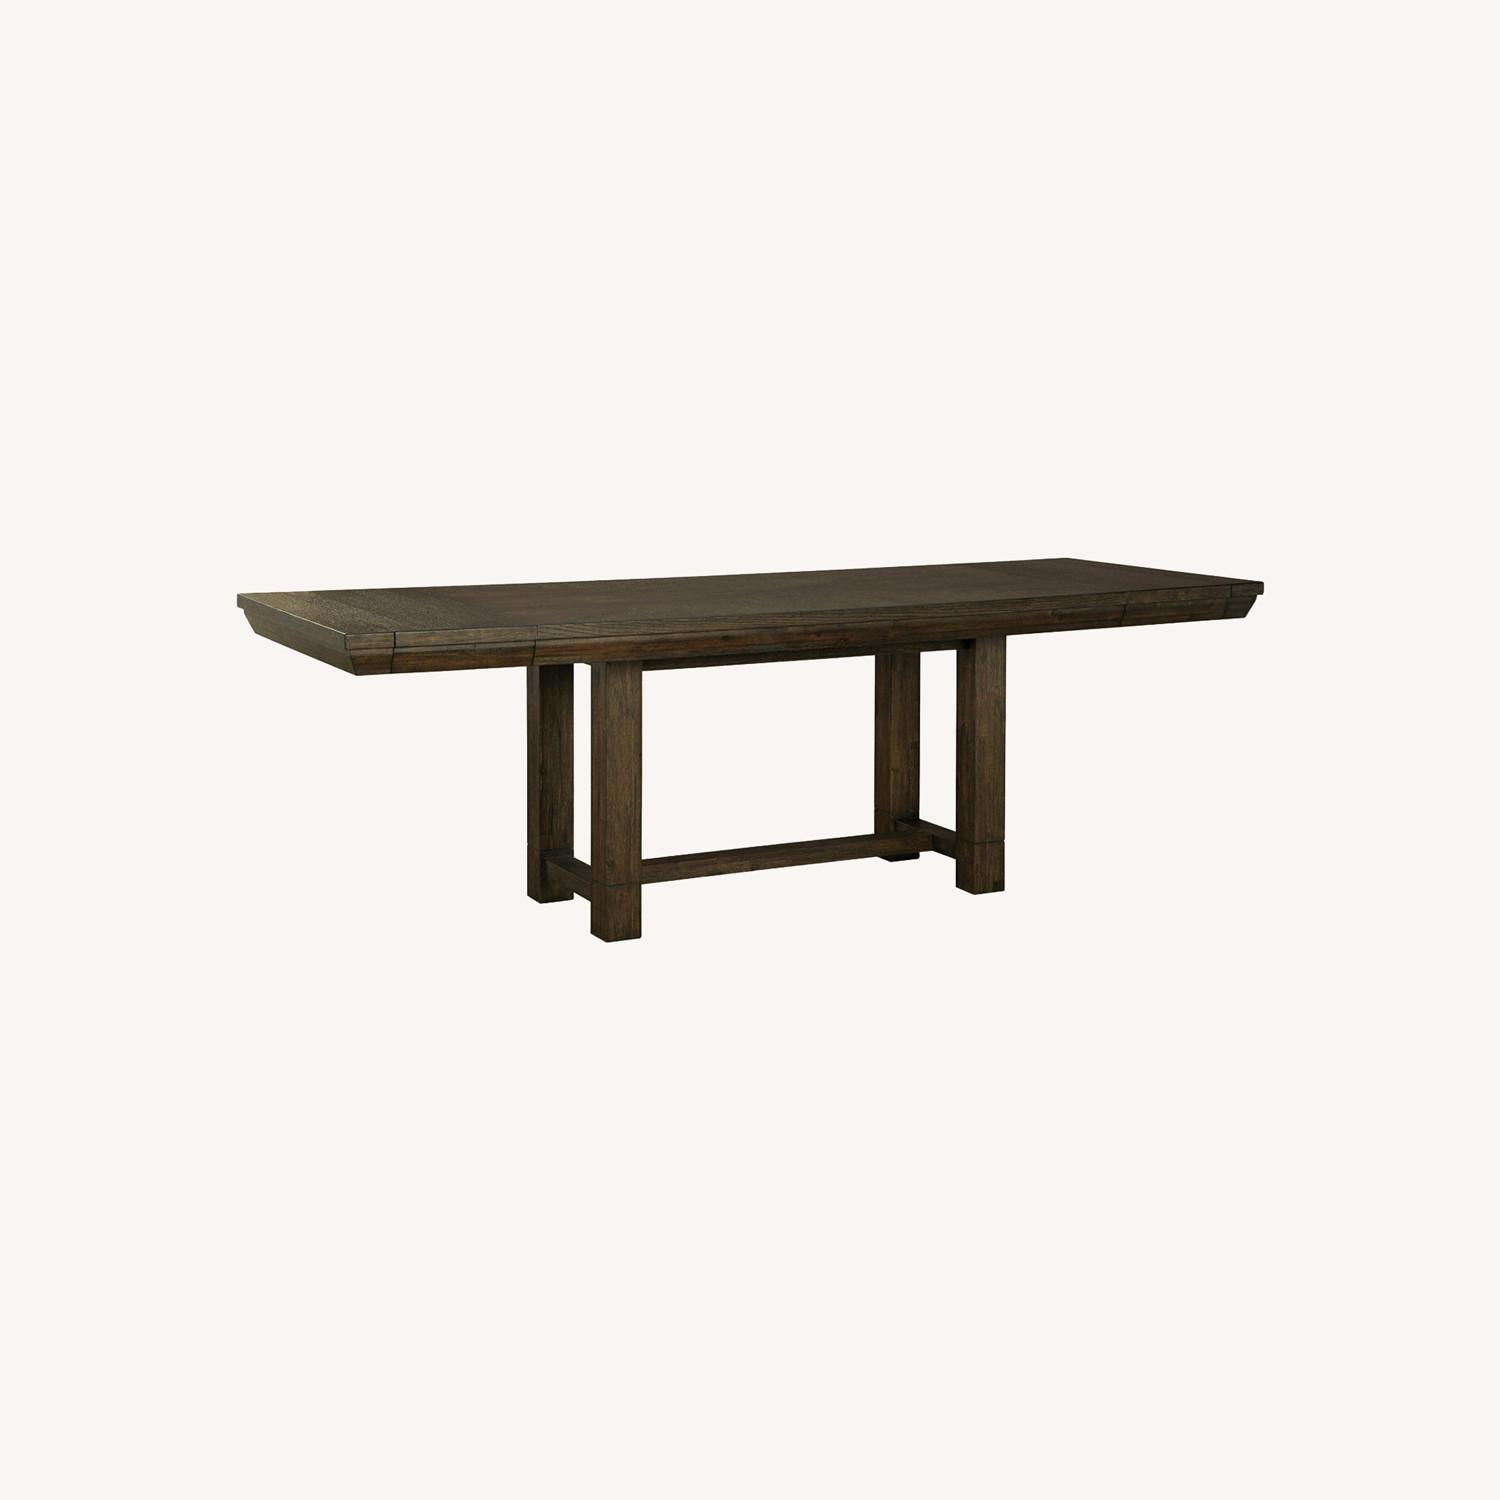 Ashley Furniture Dellbeck Extendable Dining Table - image-0